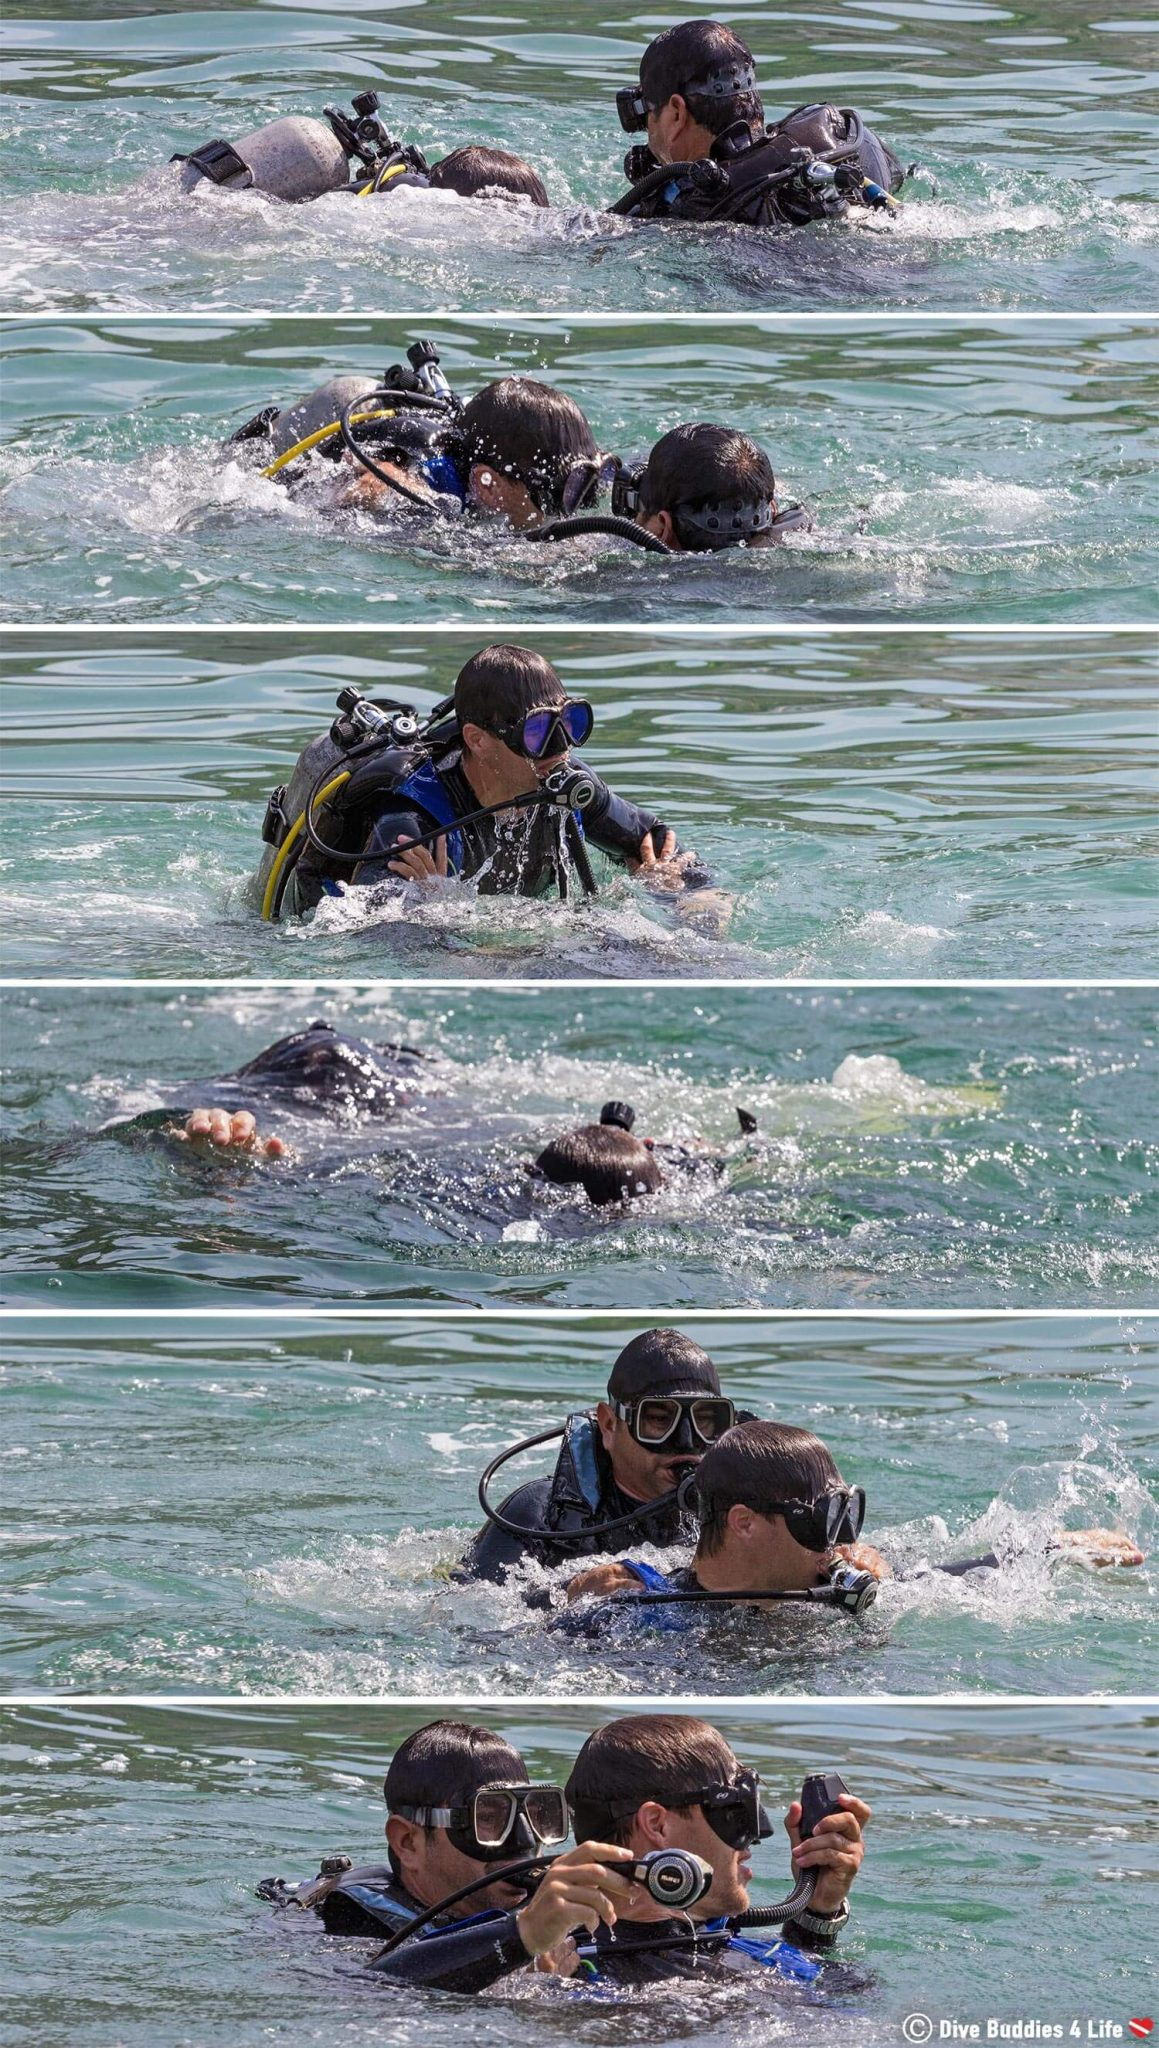 Joey And Angel Fighting In Scuba Diving Equipment During The PADI Rescue Diver Scuba Course